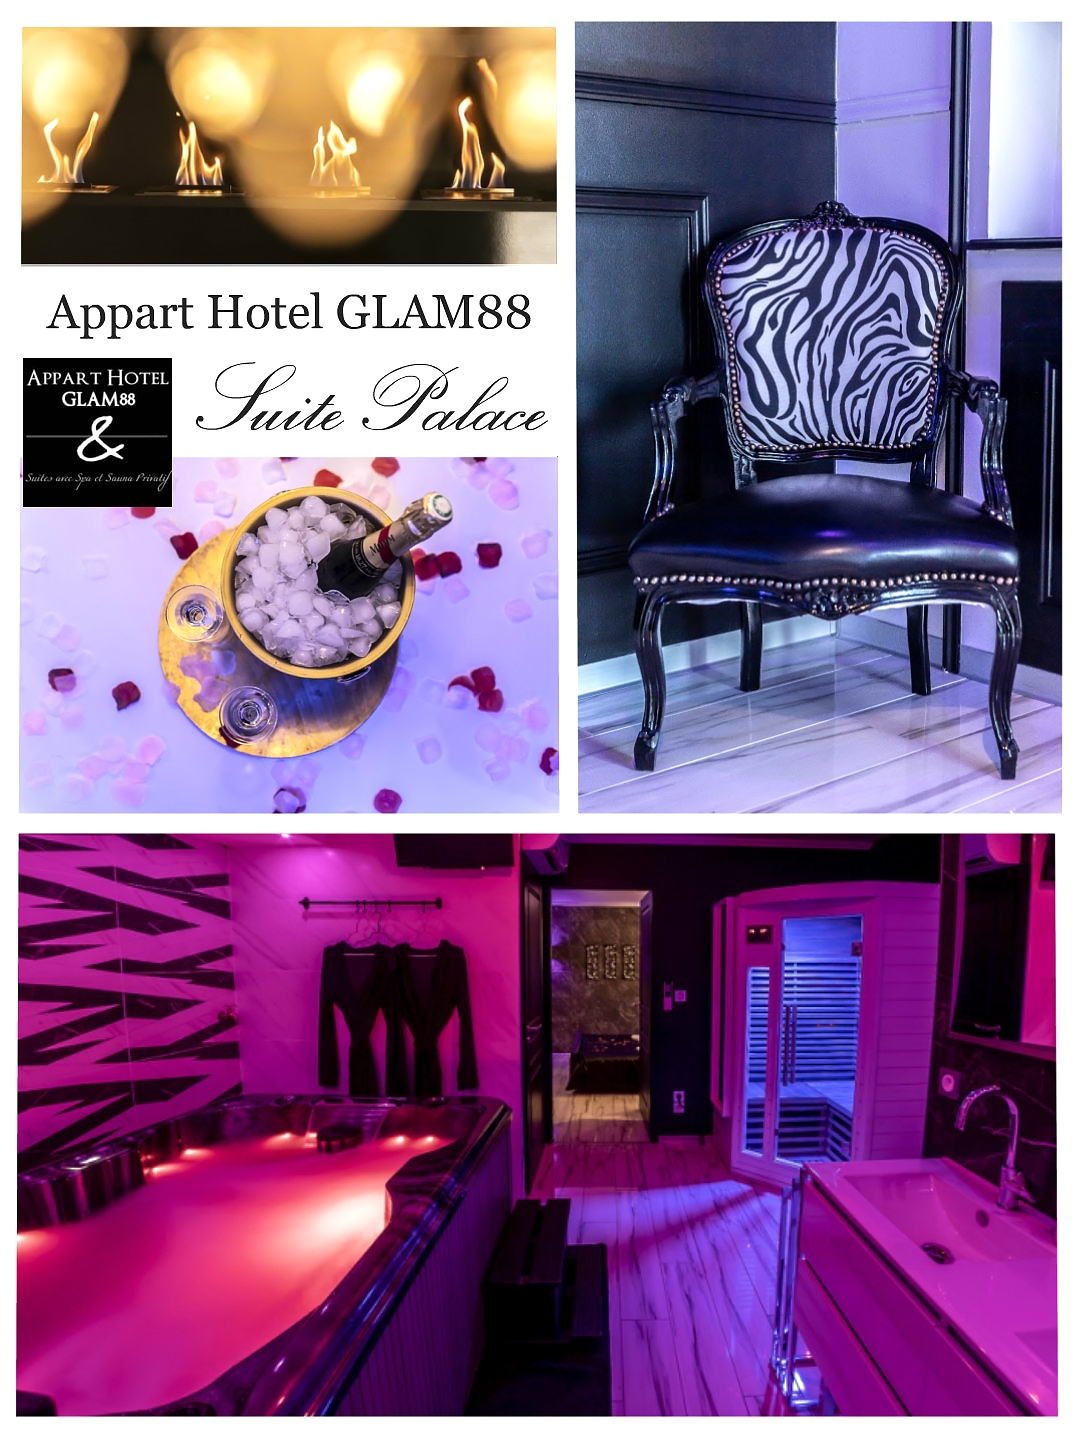 un week-end Bed and Spa aux apparts Hotel Glam88 Remiremont